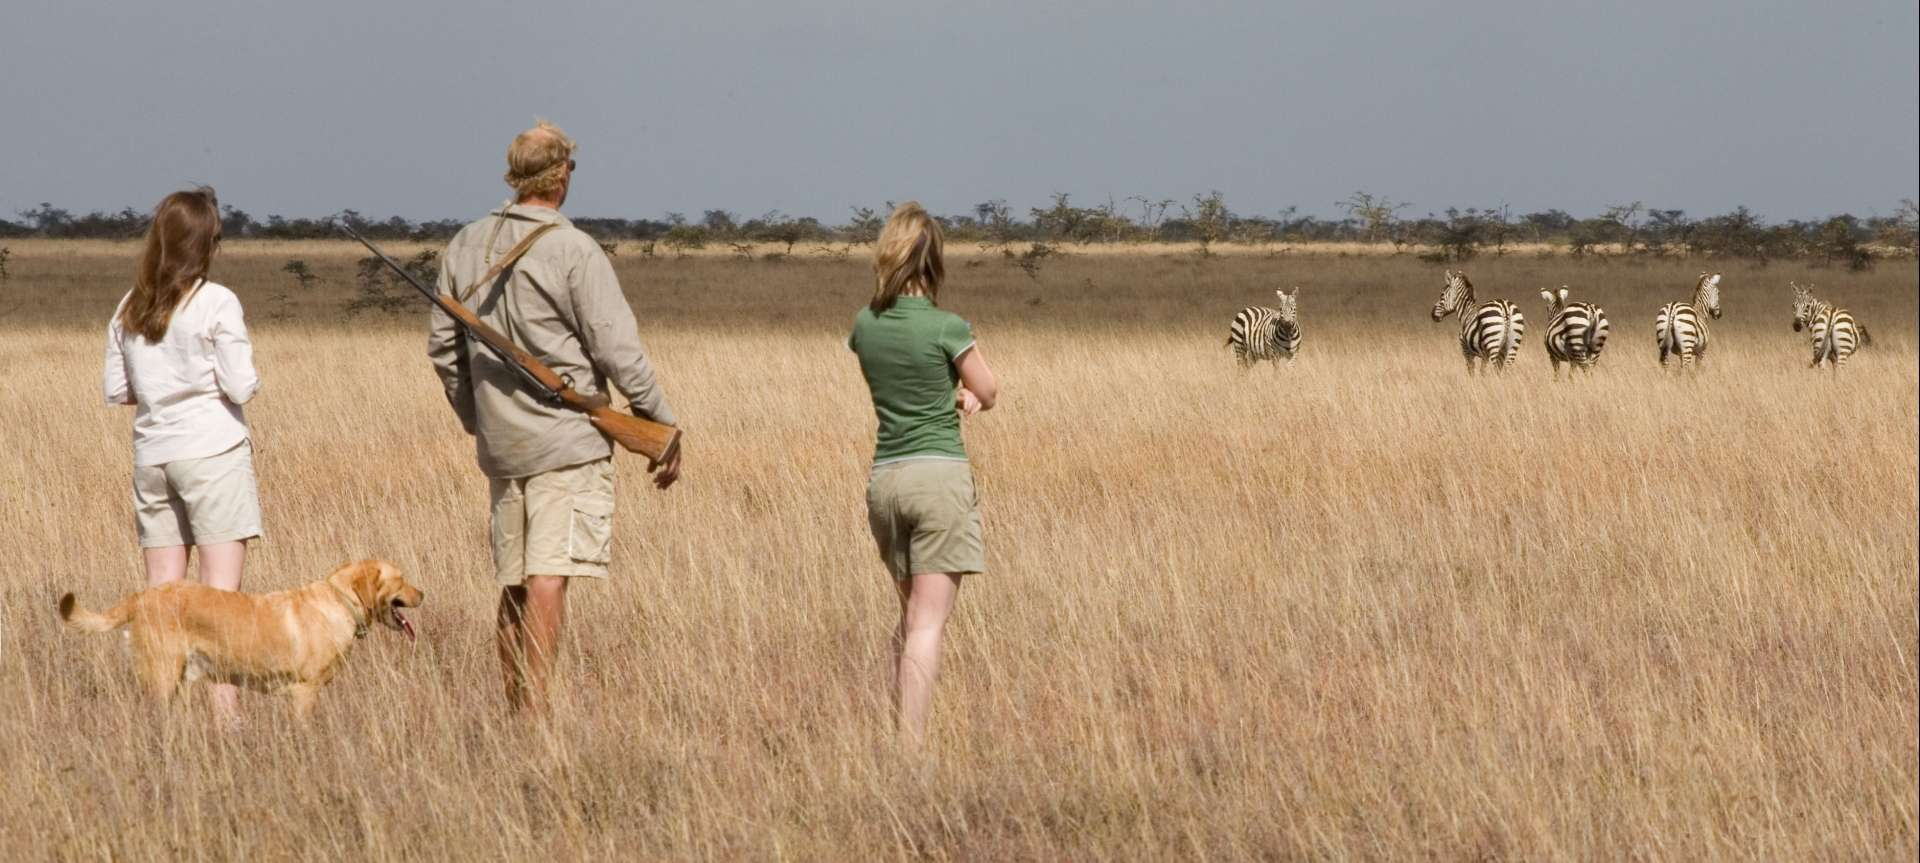 Walking safaris in Africa - Africa Wildlife Safaris